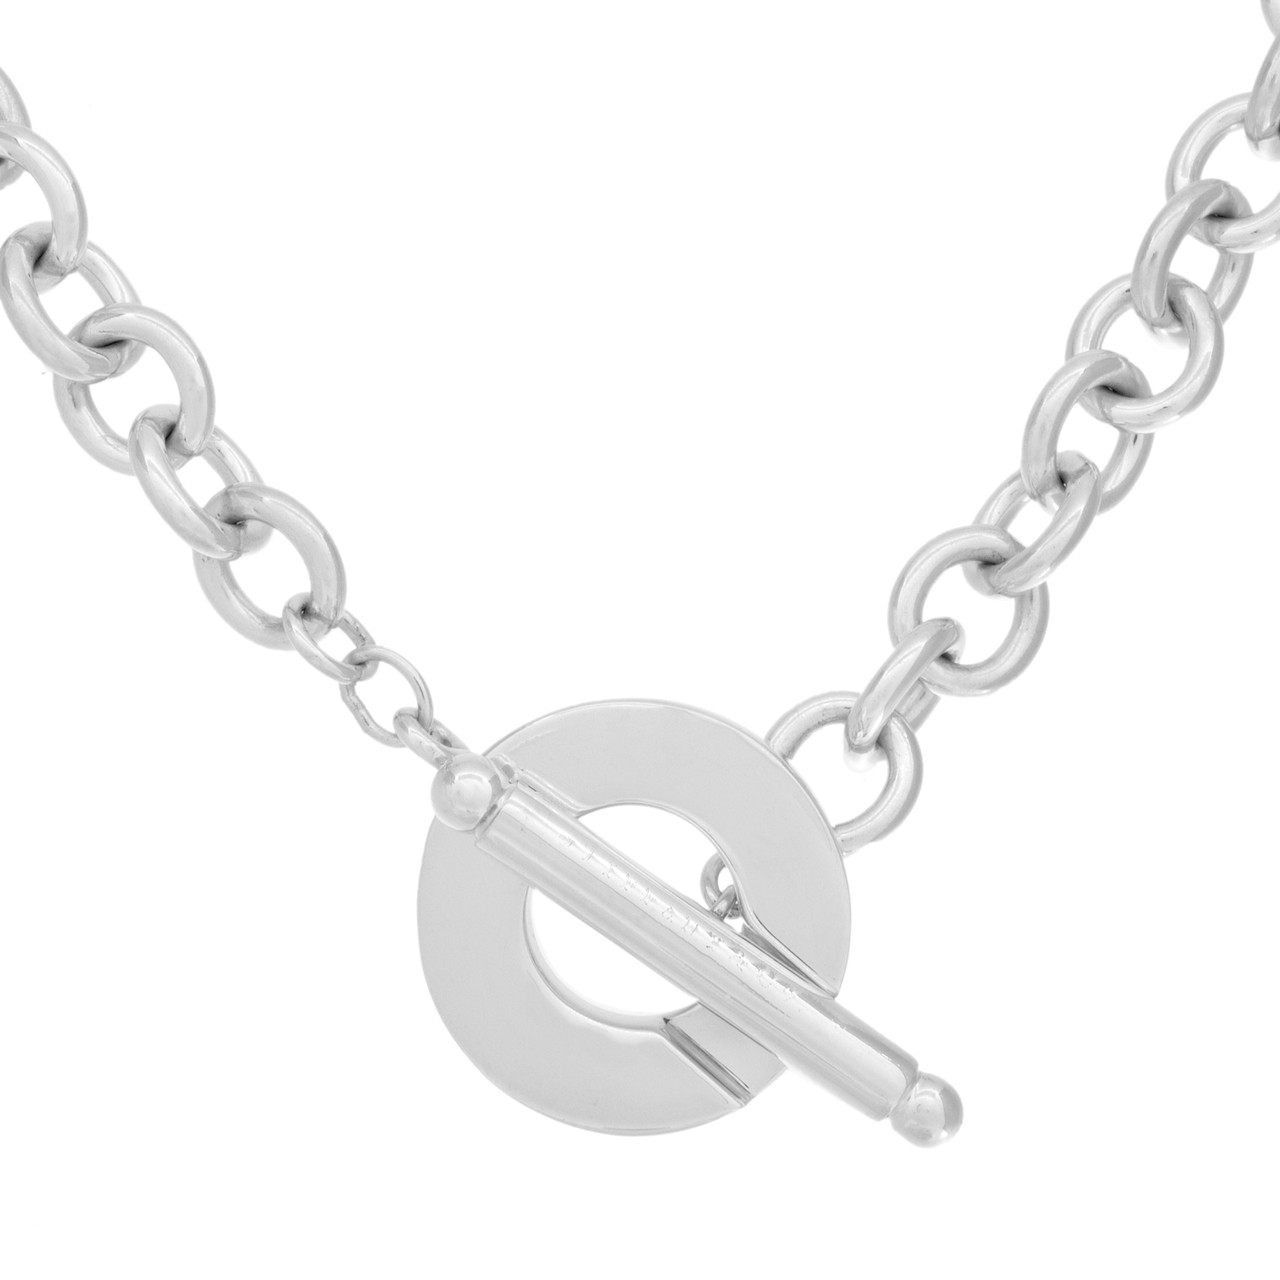 df7a881cbd5f3b Tiffany & Co. Sterling Silver Toggle Necklace - modaselle